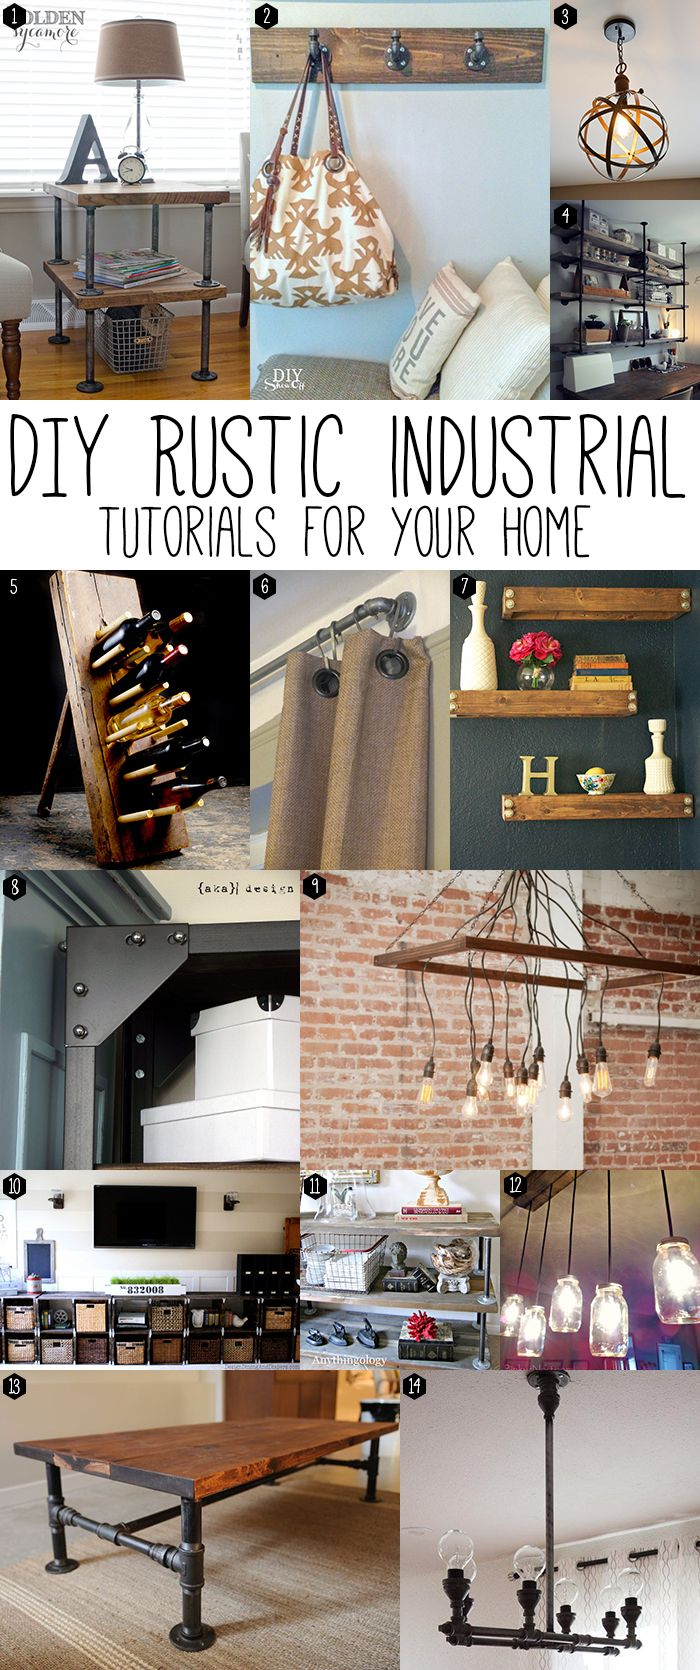 DIY: Rustic Industrial Projects - this post has some great tutorials for furnishings and home decor.